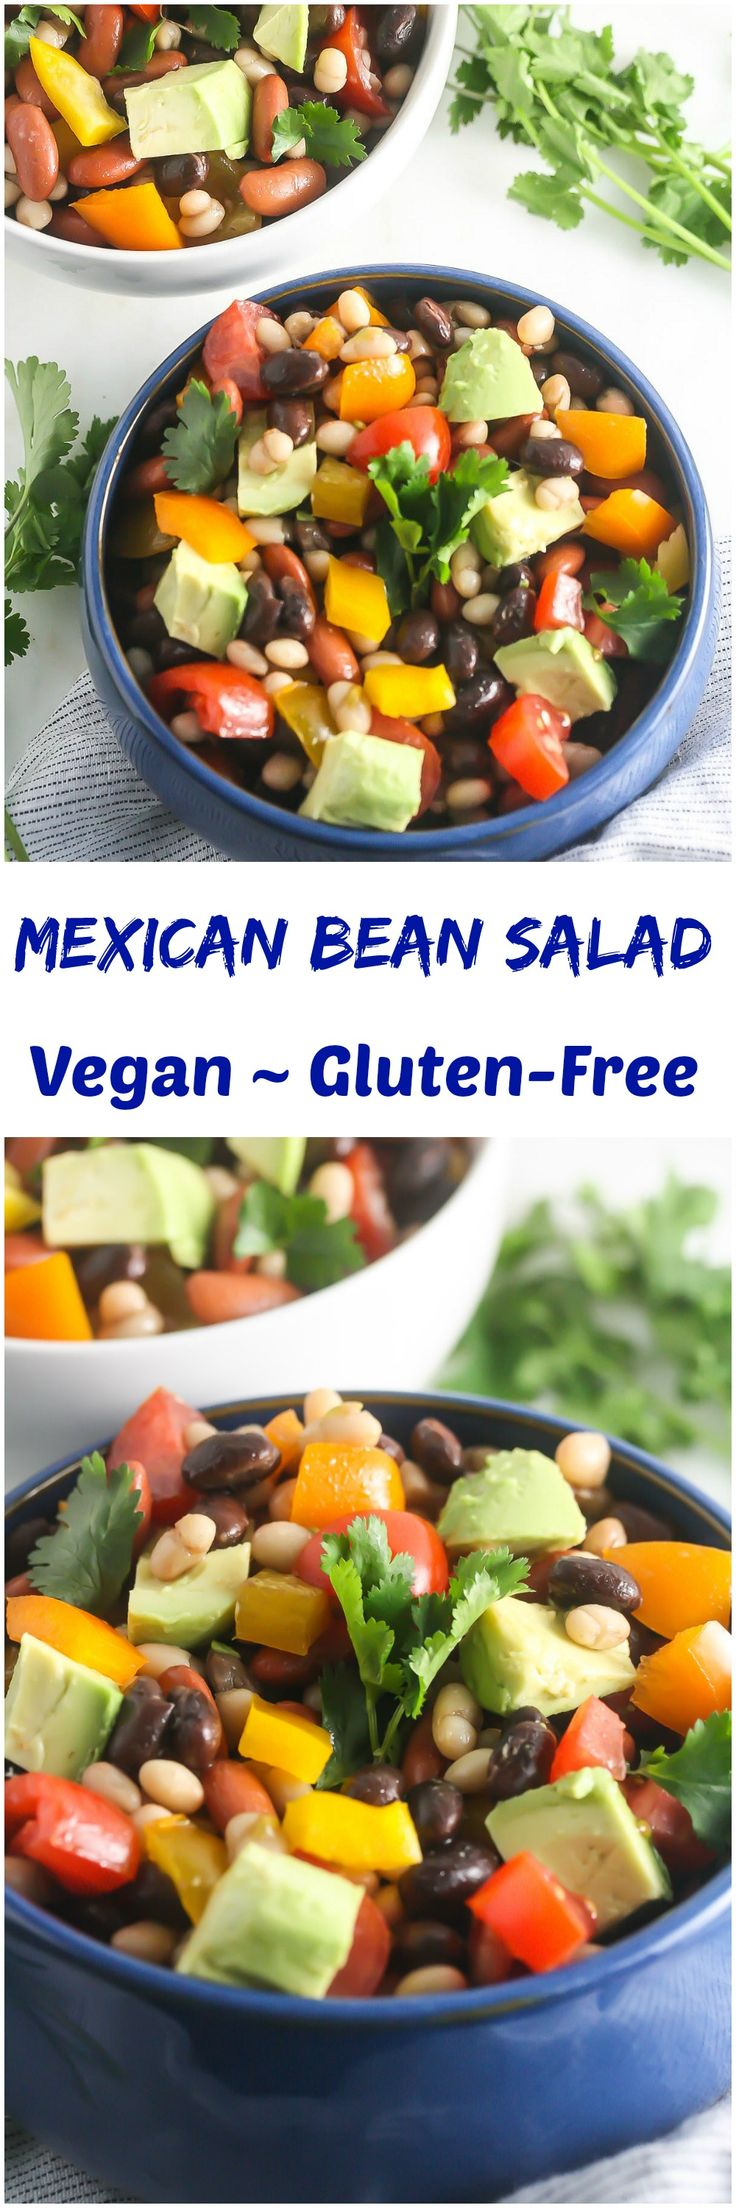 This Mexican Bean Salad is packed with plant-based protein and fiber and is naturally gluten and grain-free!